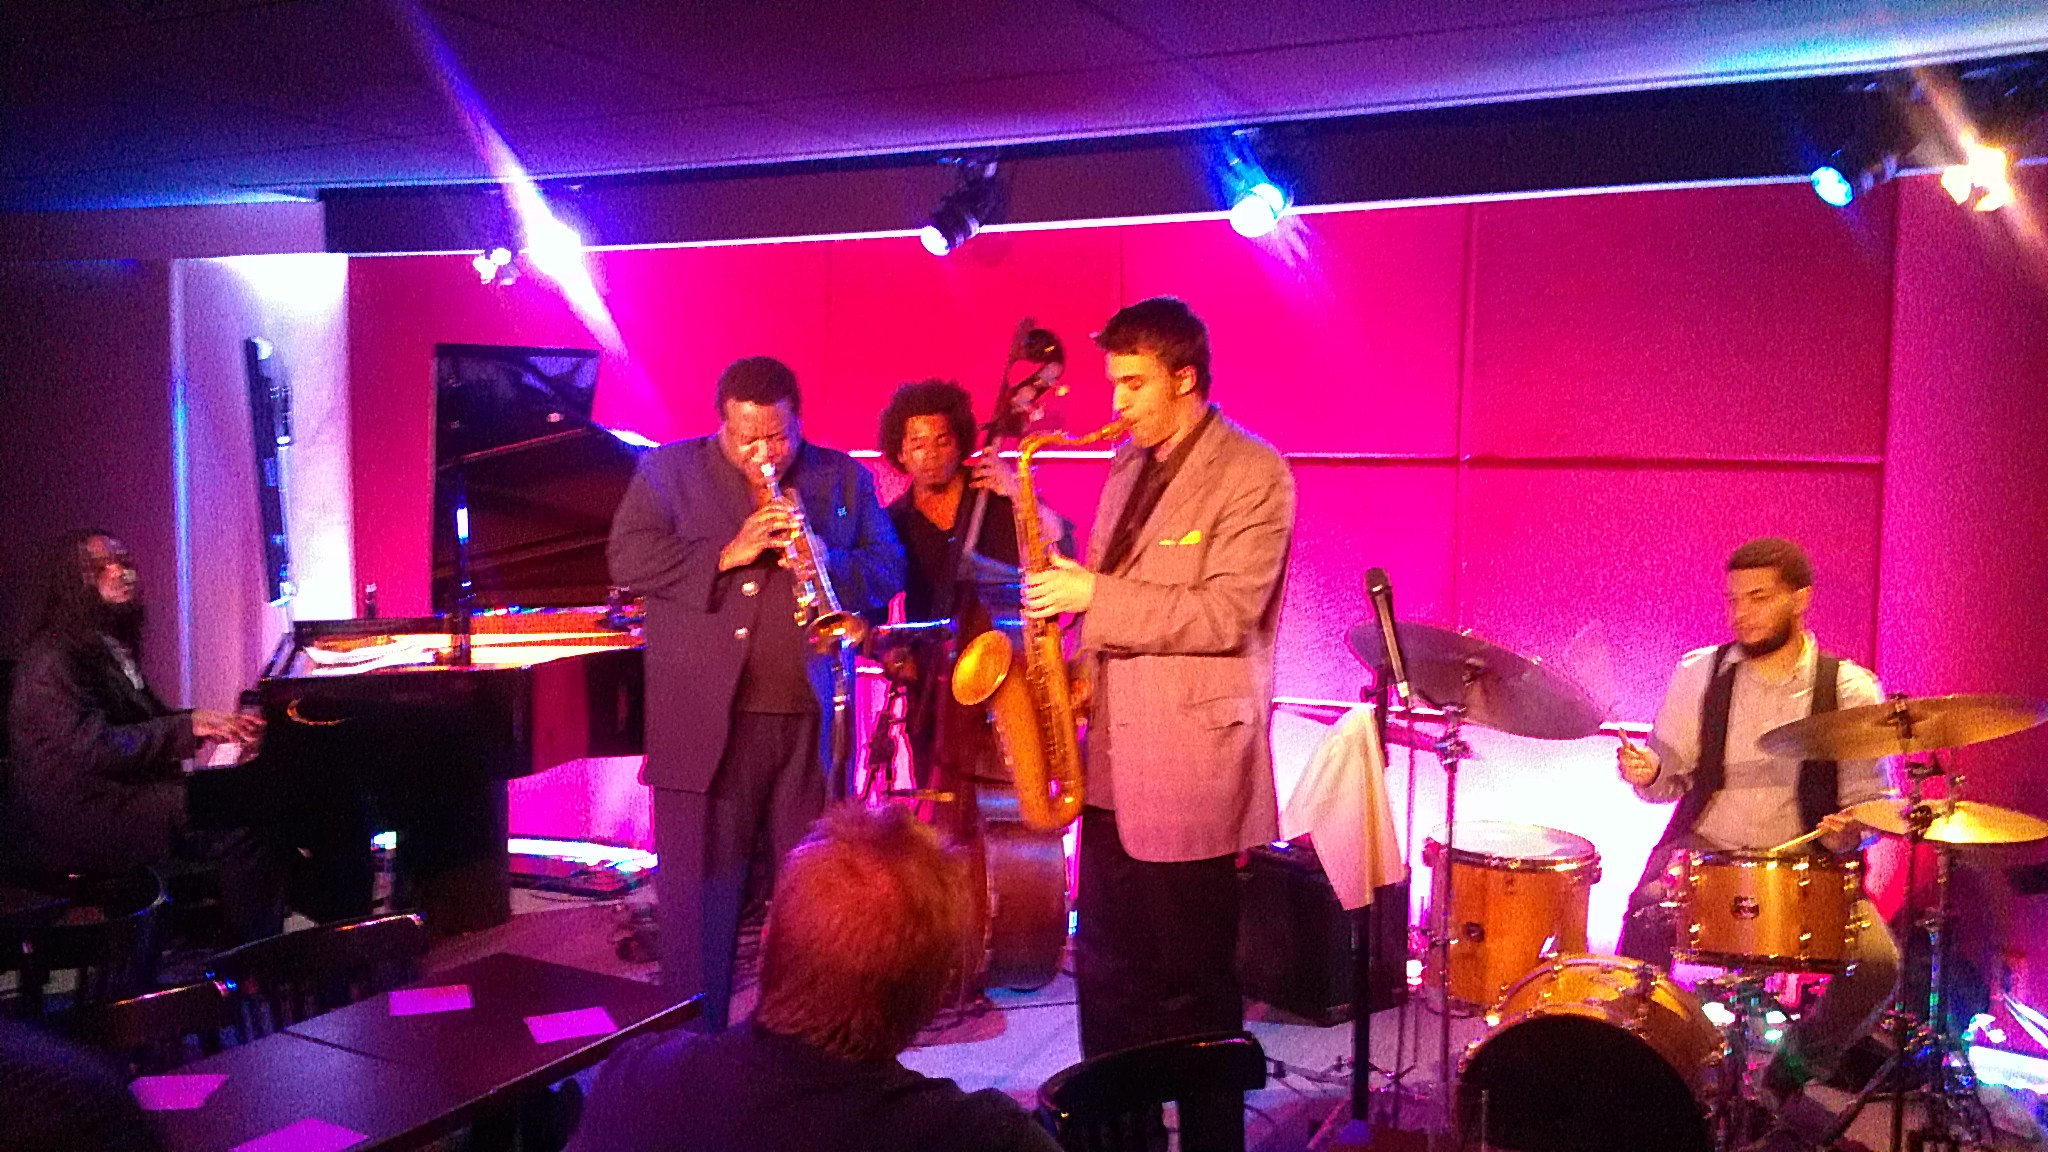 Wallace roney quintet and jaris reed group